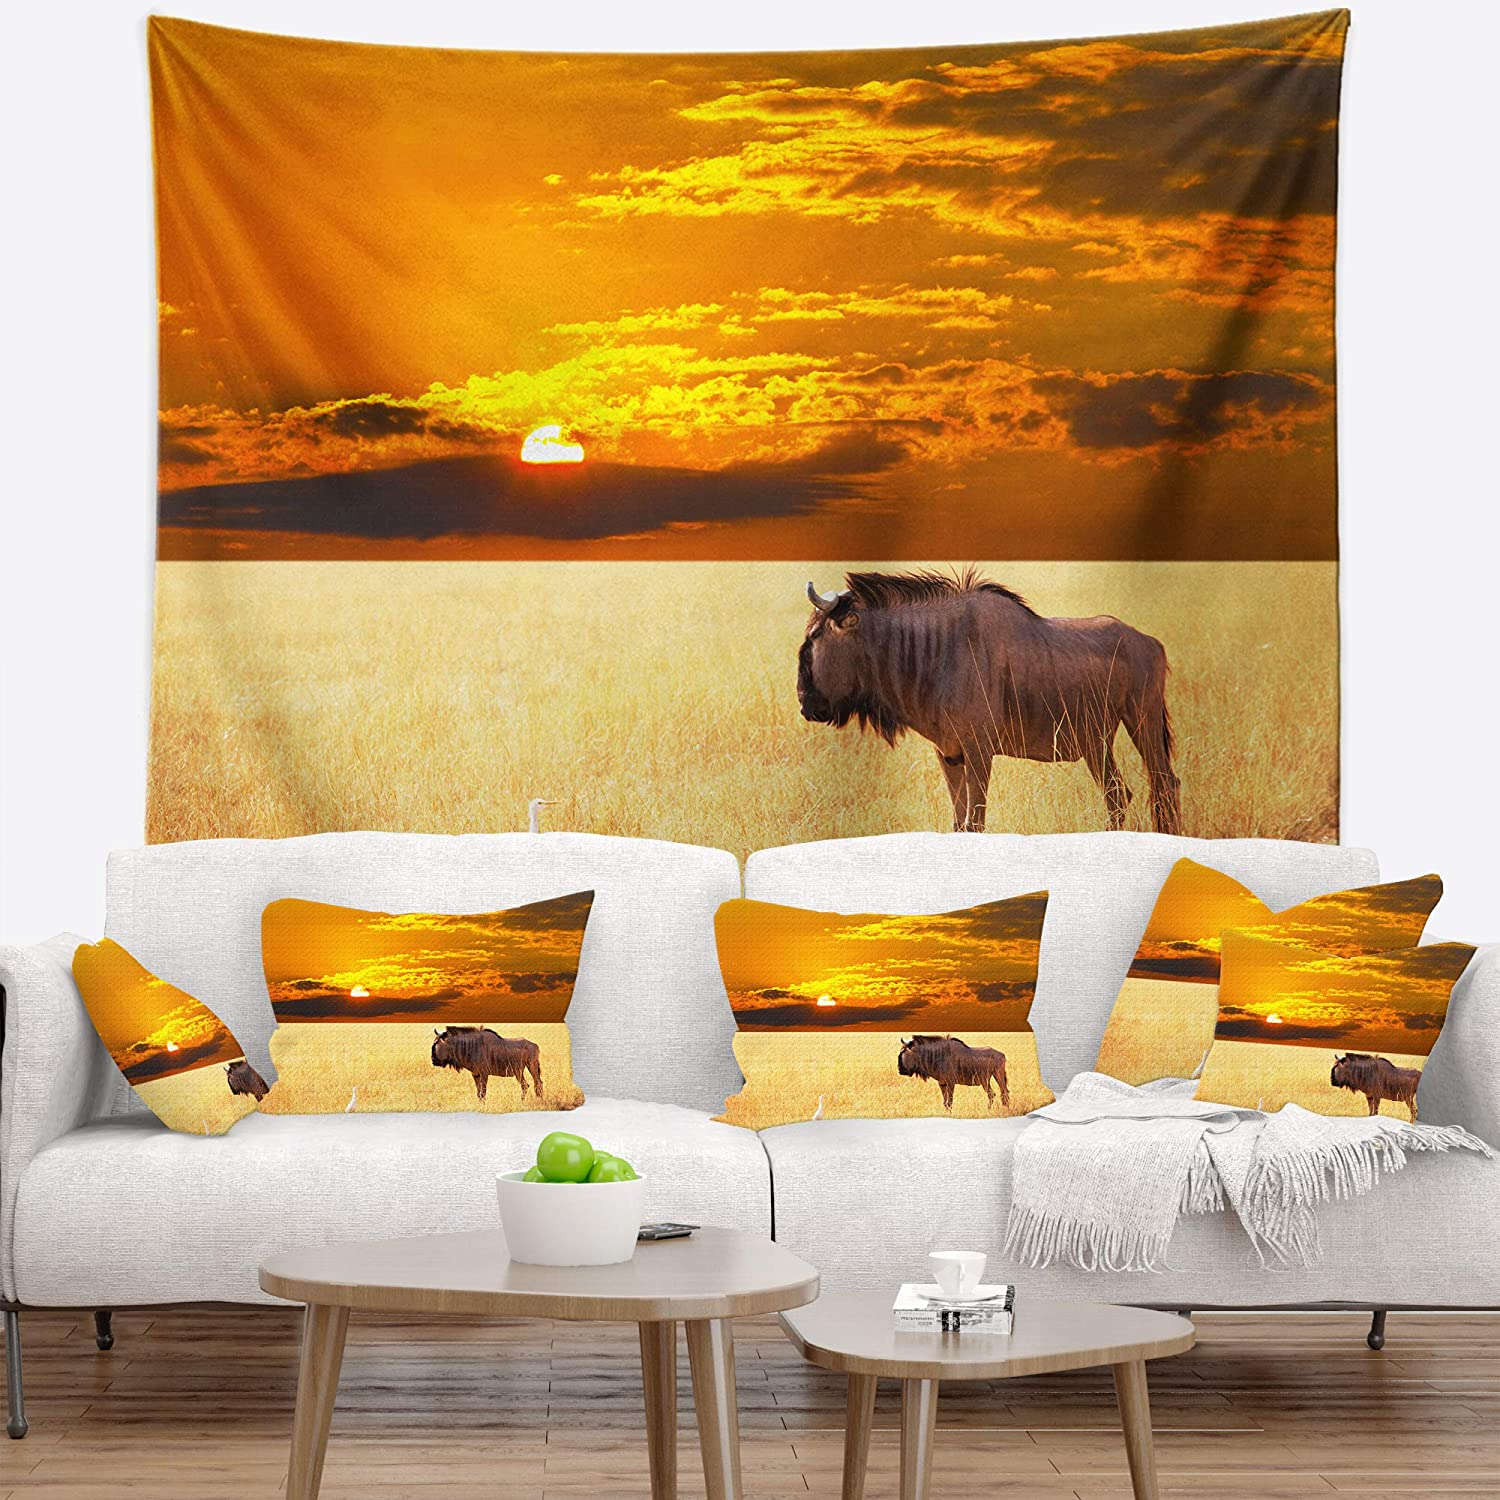 50 in x 60 in in Designart TAP12785-50-60  Huge Antelope in Field at Sunset African Landscape Blanket D/écor Art for Home and Office Wall Tapestry Large